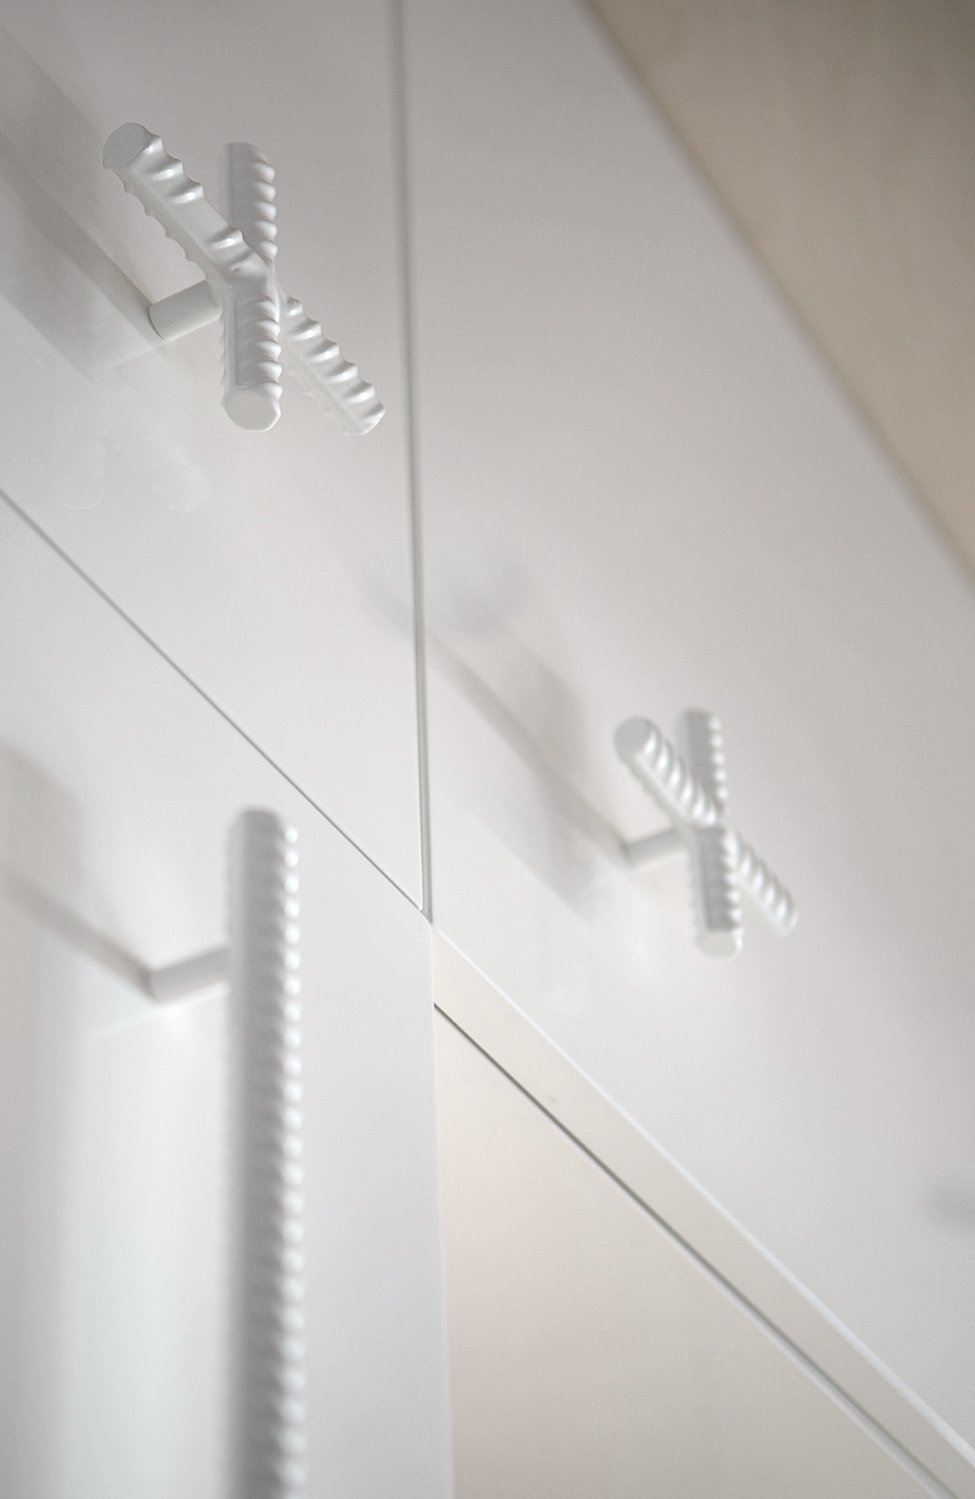 Rebar Drawer Pulls - A modern home with personality of perfect for a fun couple